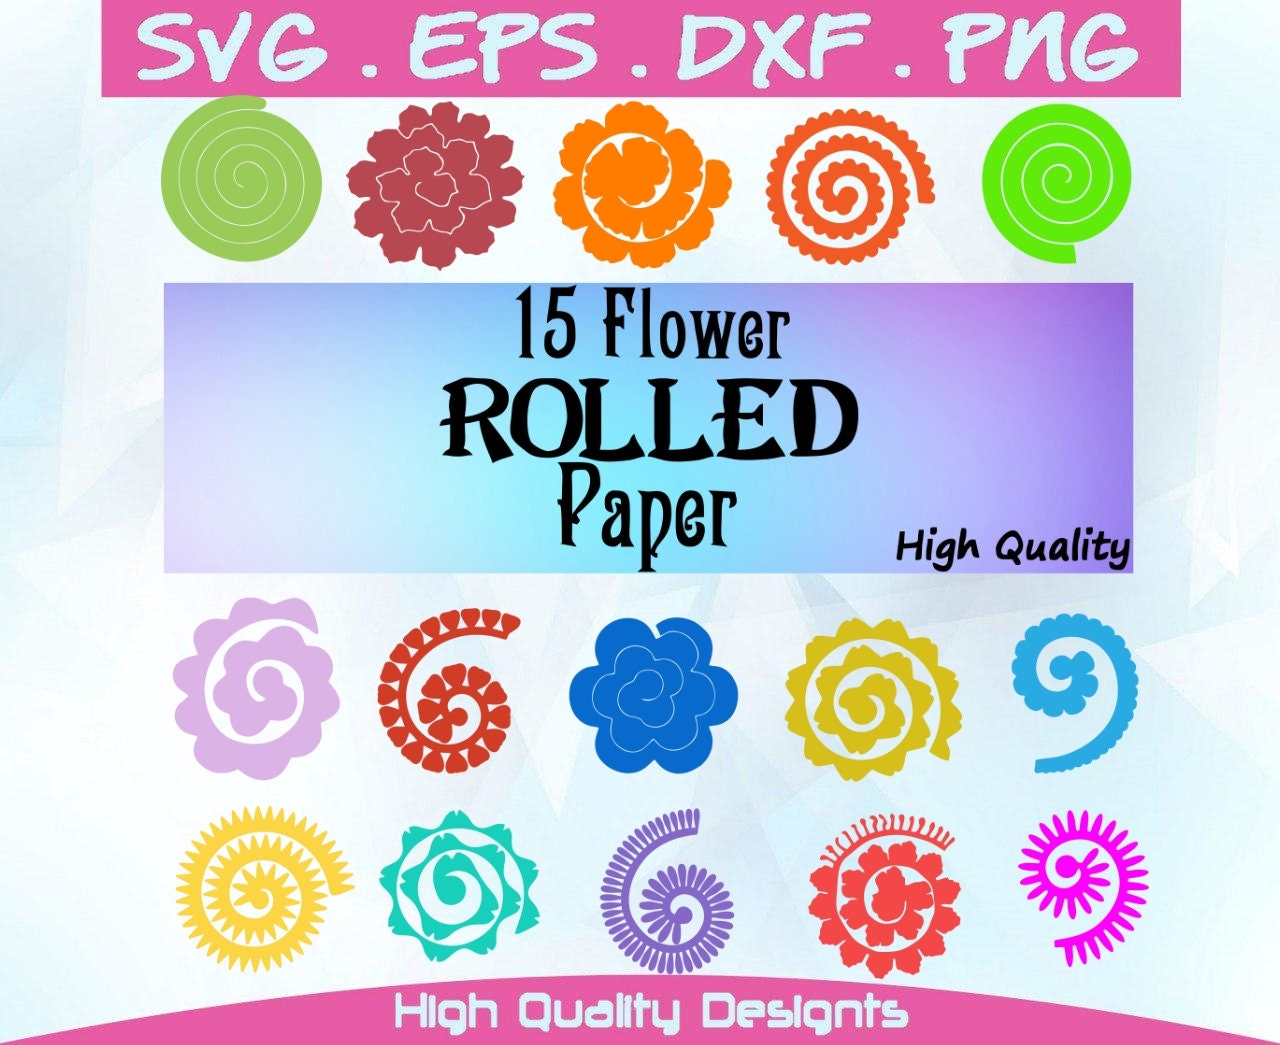 Flowers Svg 15 Flowers Rolled Paperrolled Etsy